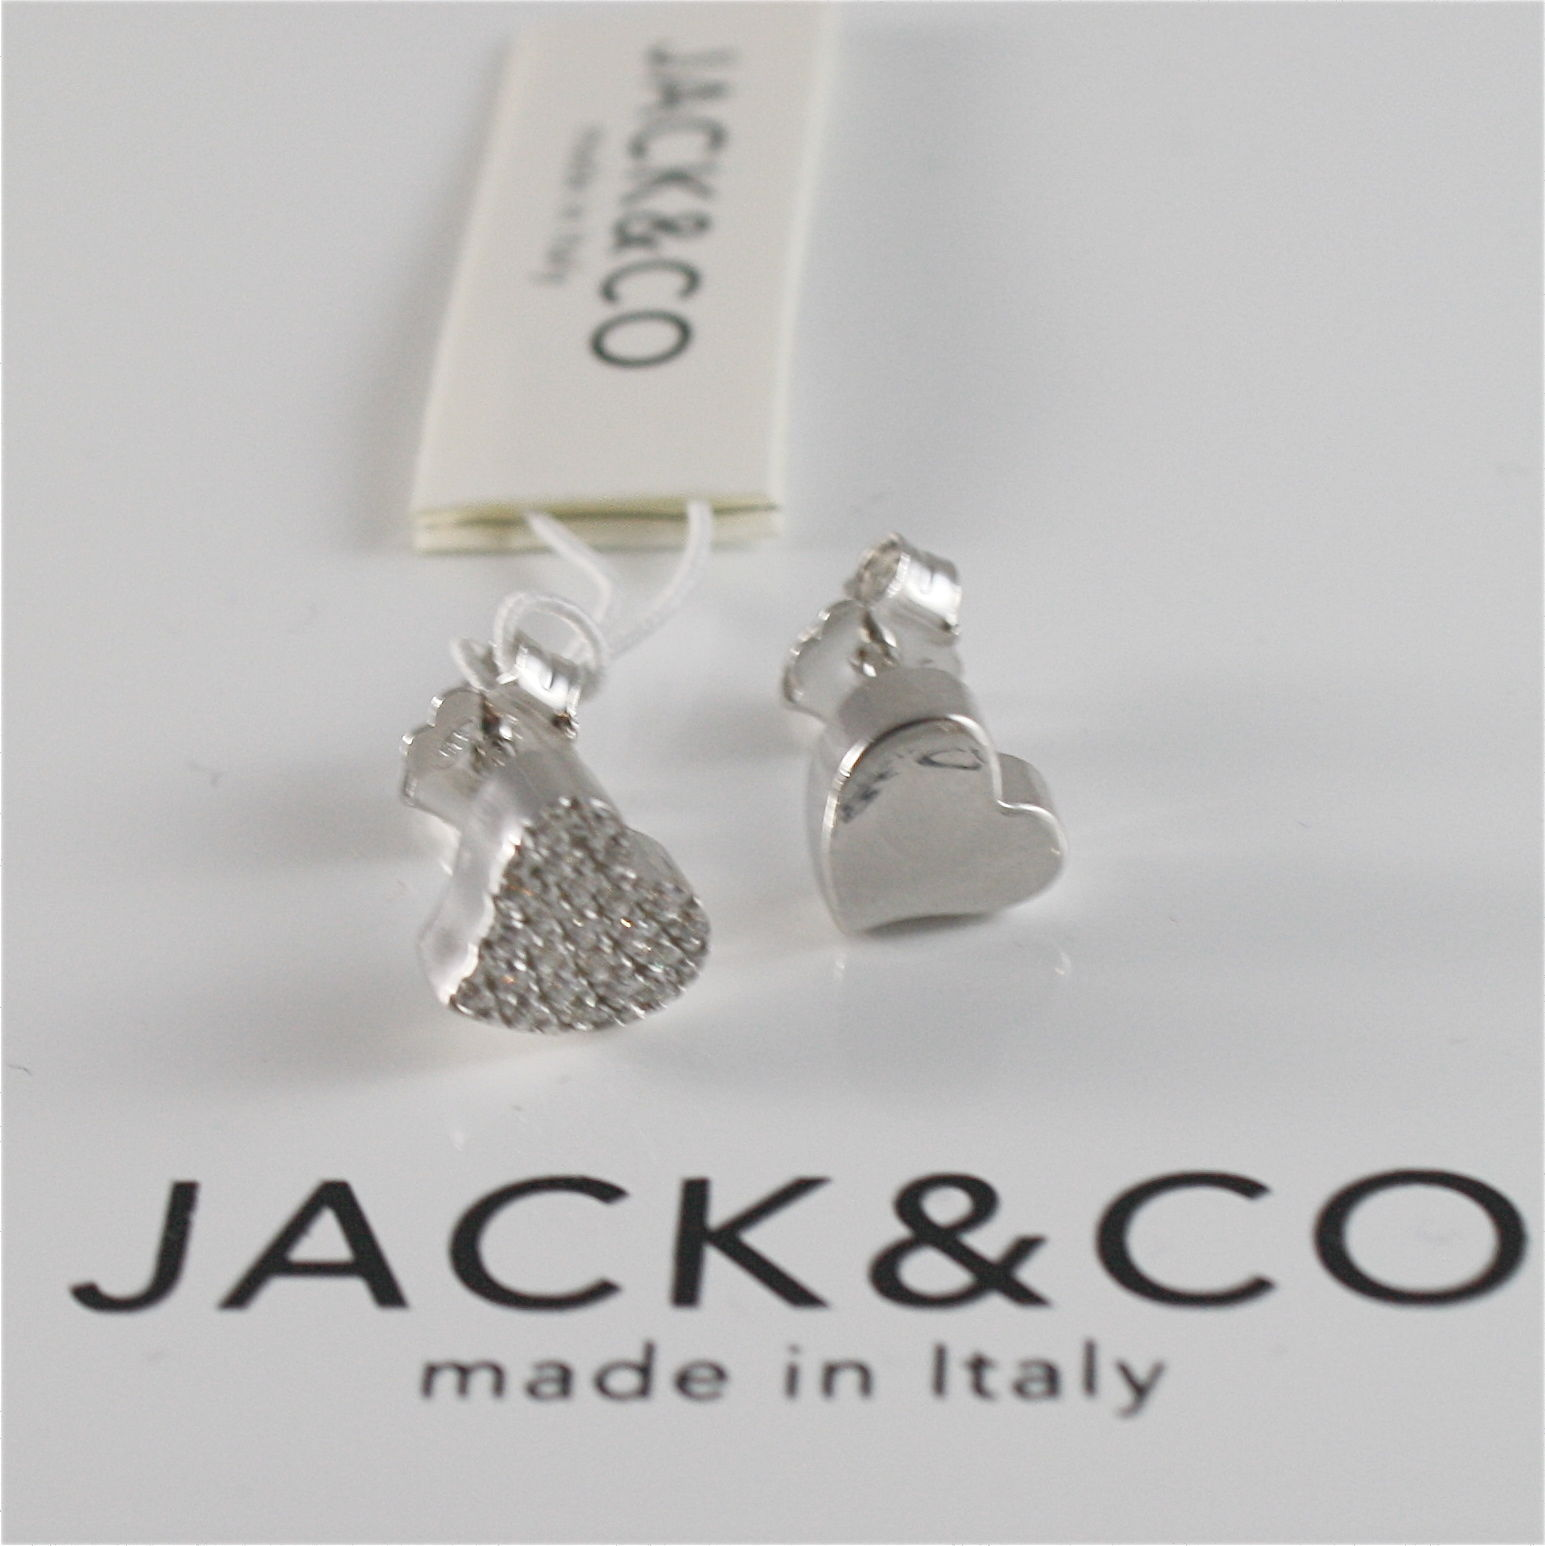 925 RHODIUM SILVER JACK&CO EARRINGS WITH HEART WITH CUBIC ZIRCONIA MADE IN ITALY